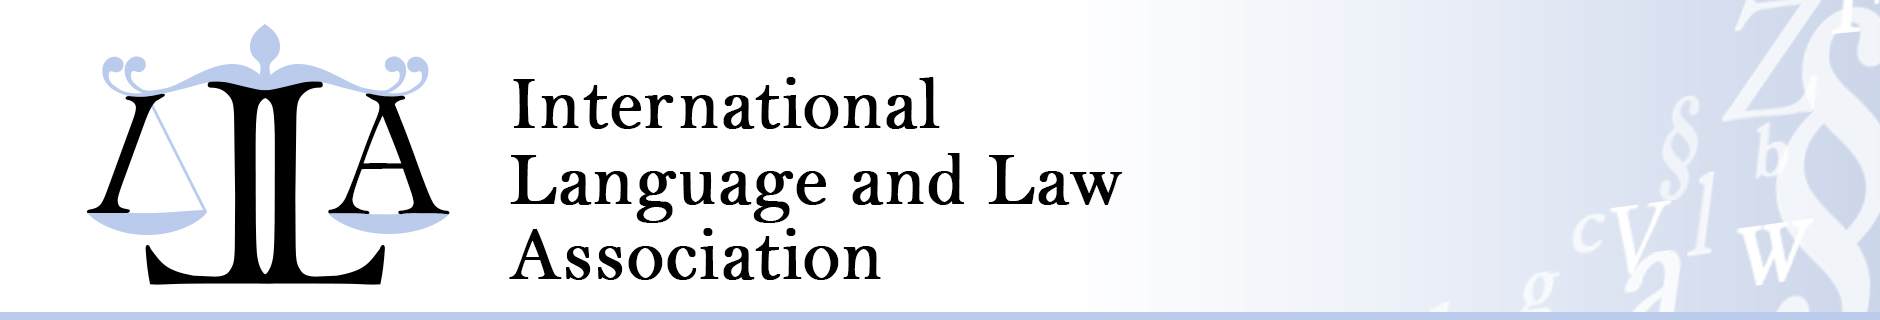 International Language and Law Association (ILLA)